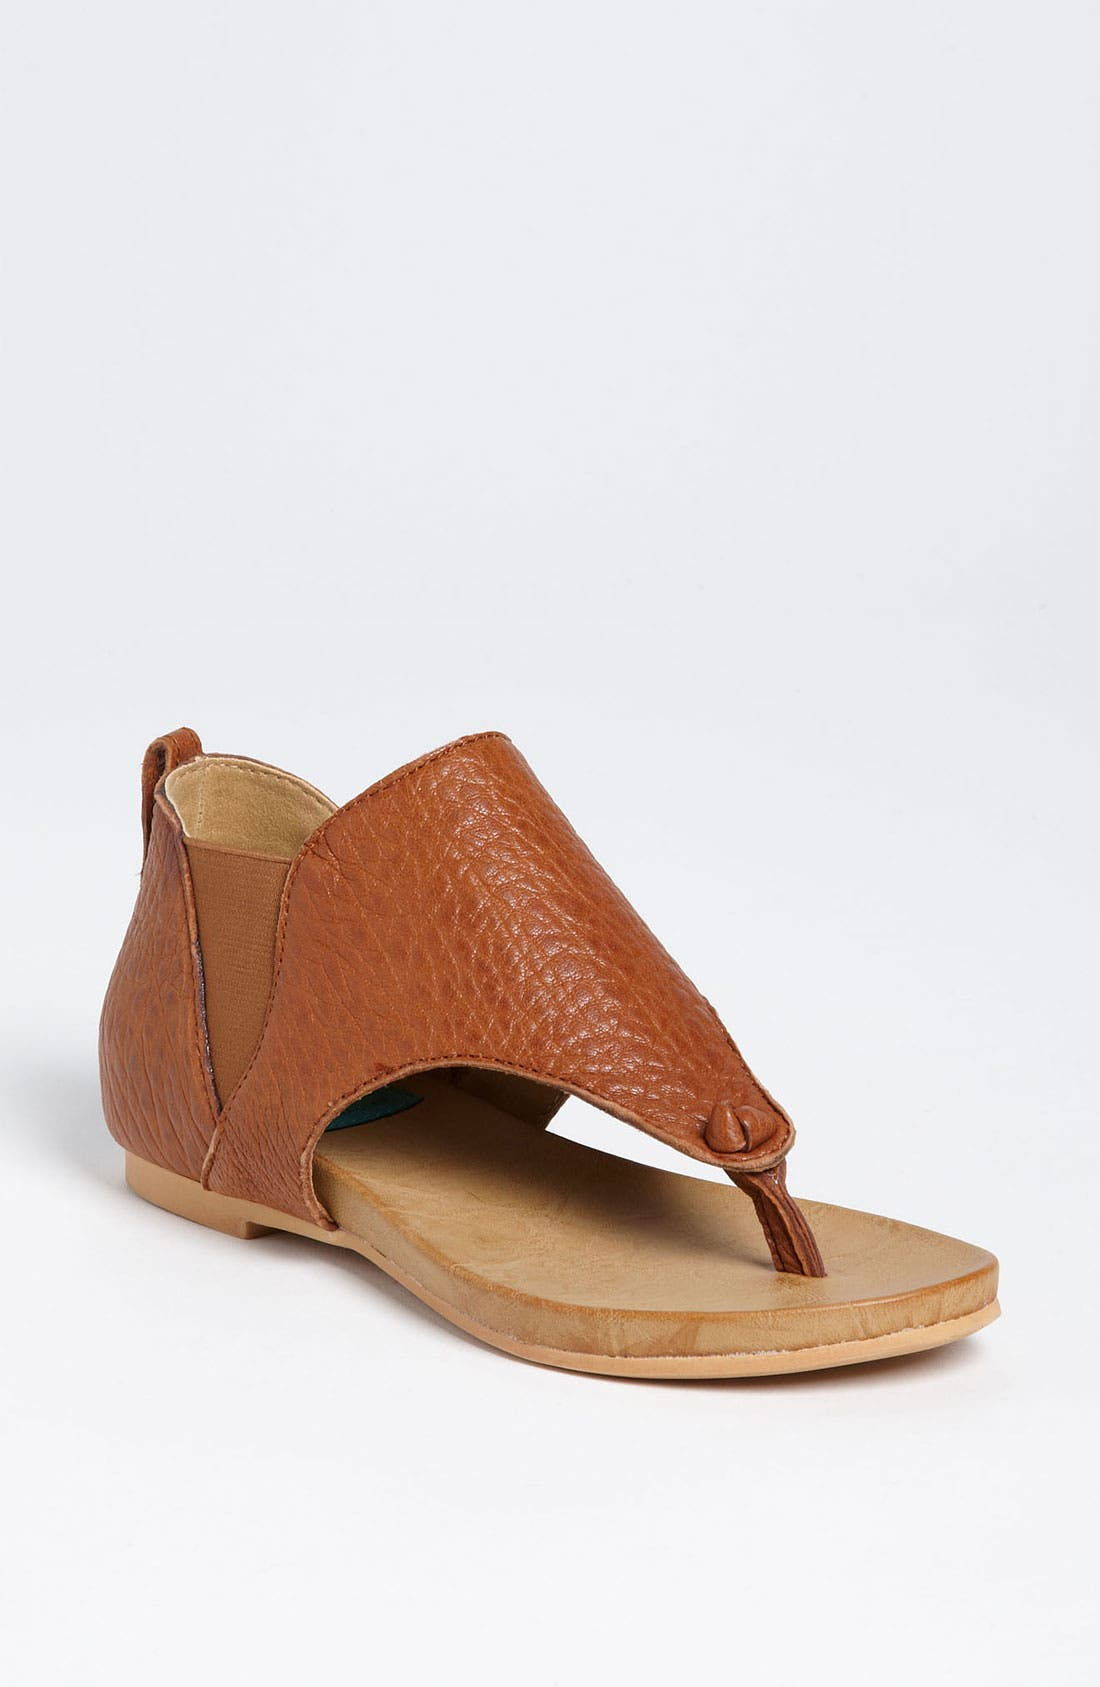 Alternate Image 1 Selected - Fugu Malibu 'Tonga' Sandal